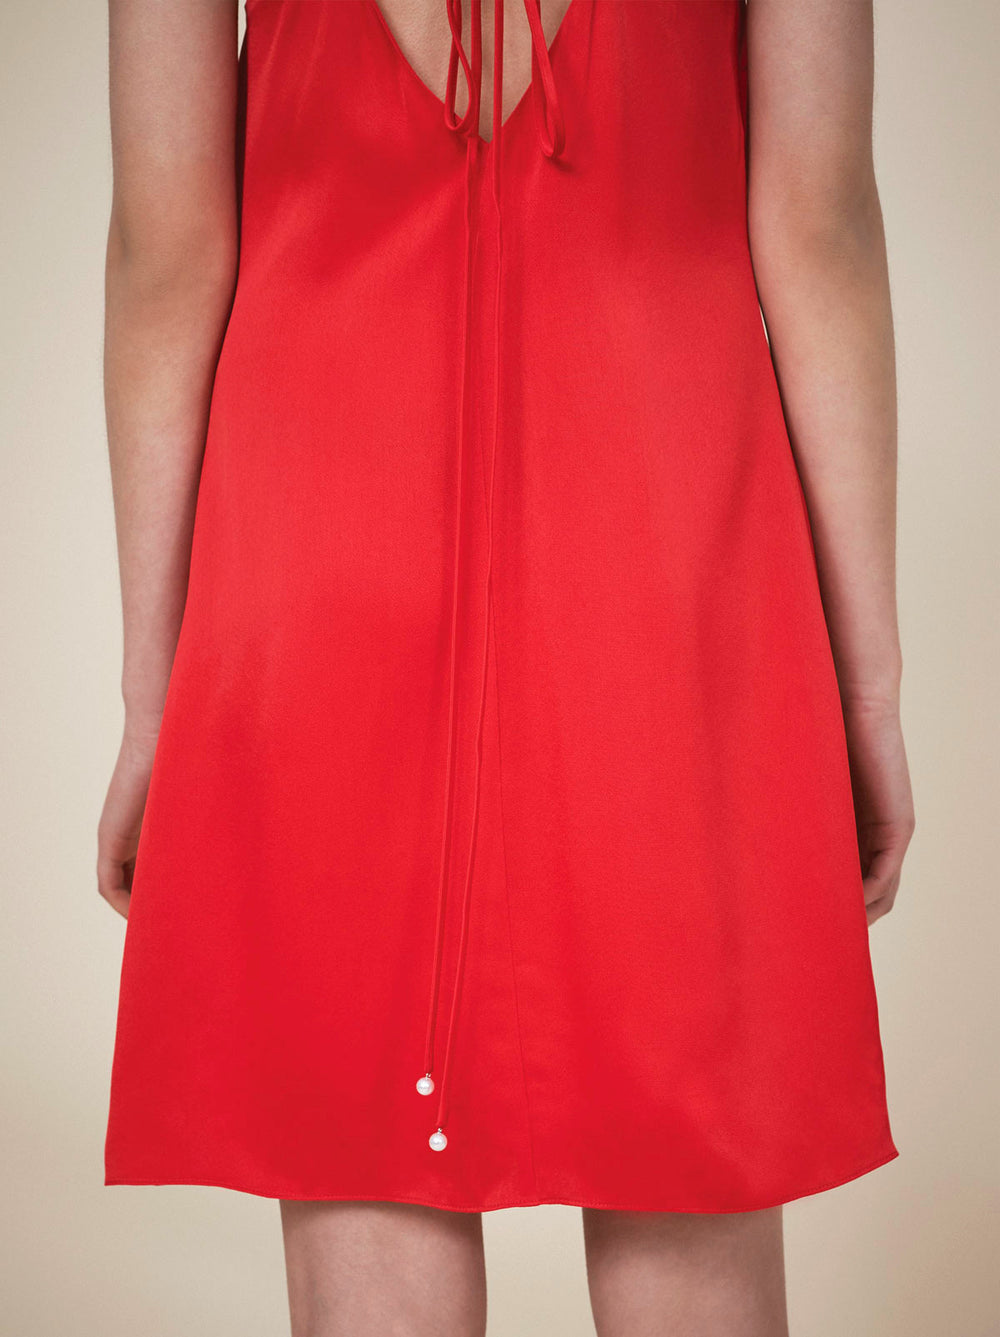 Red 90's cami slip dress by KITRI studio